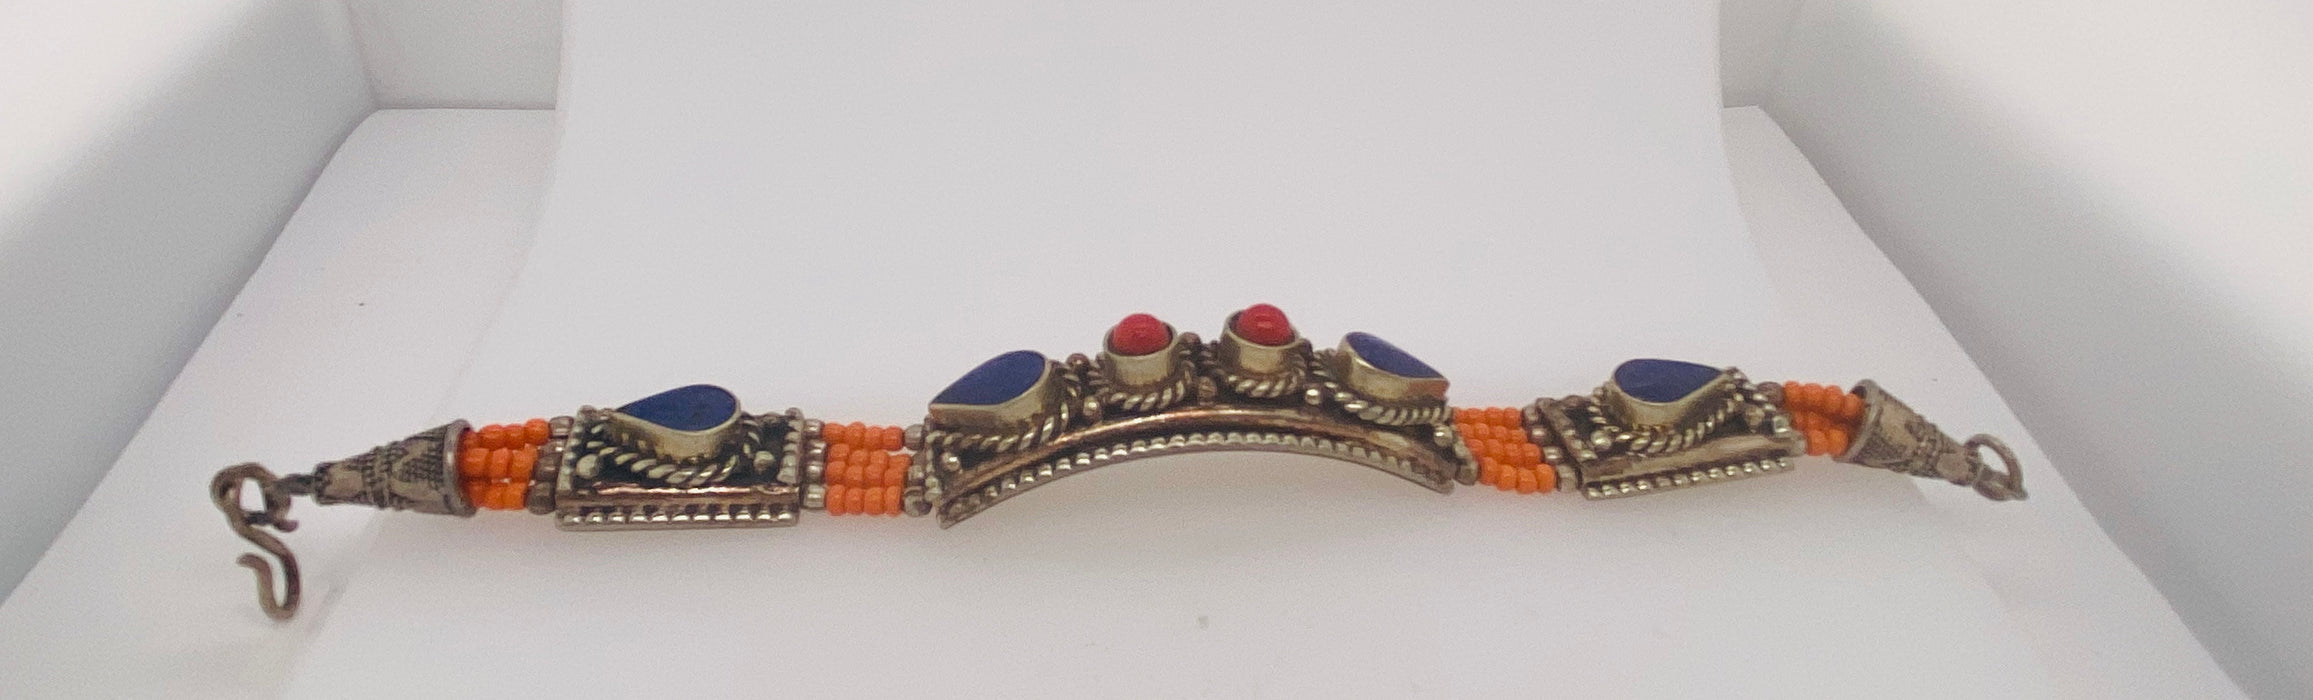 Moroccan Tribal Pure Silver Blue, Red & Orange Stones Bracelet 1950's